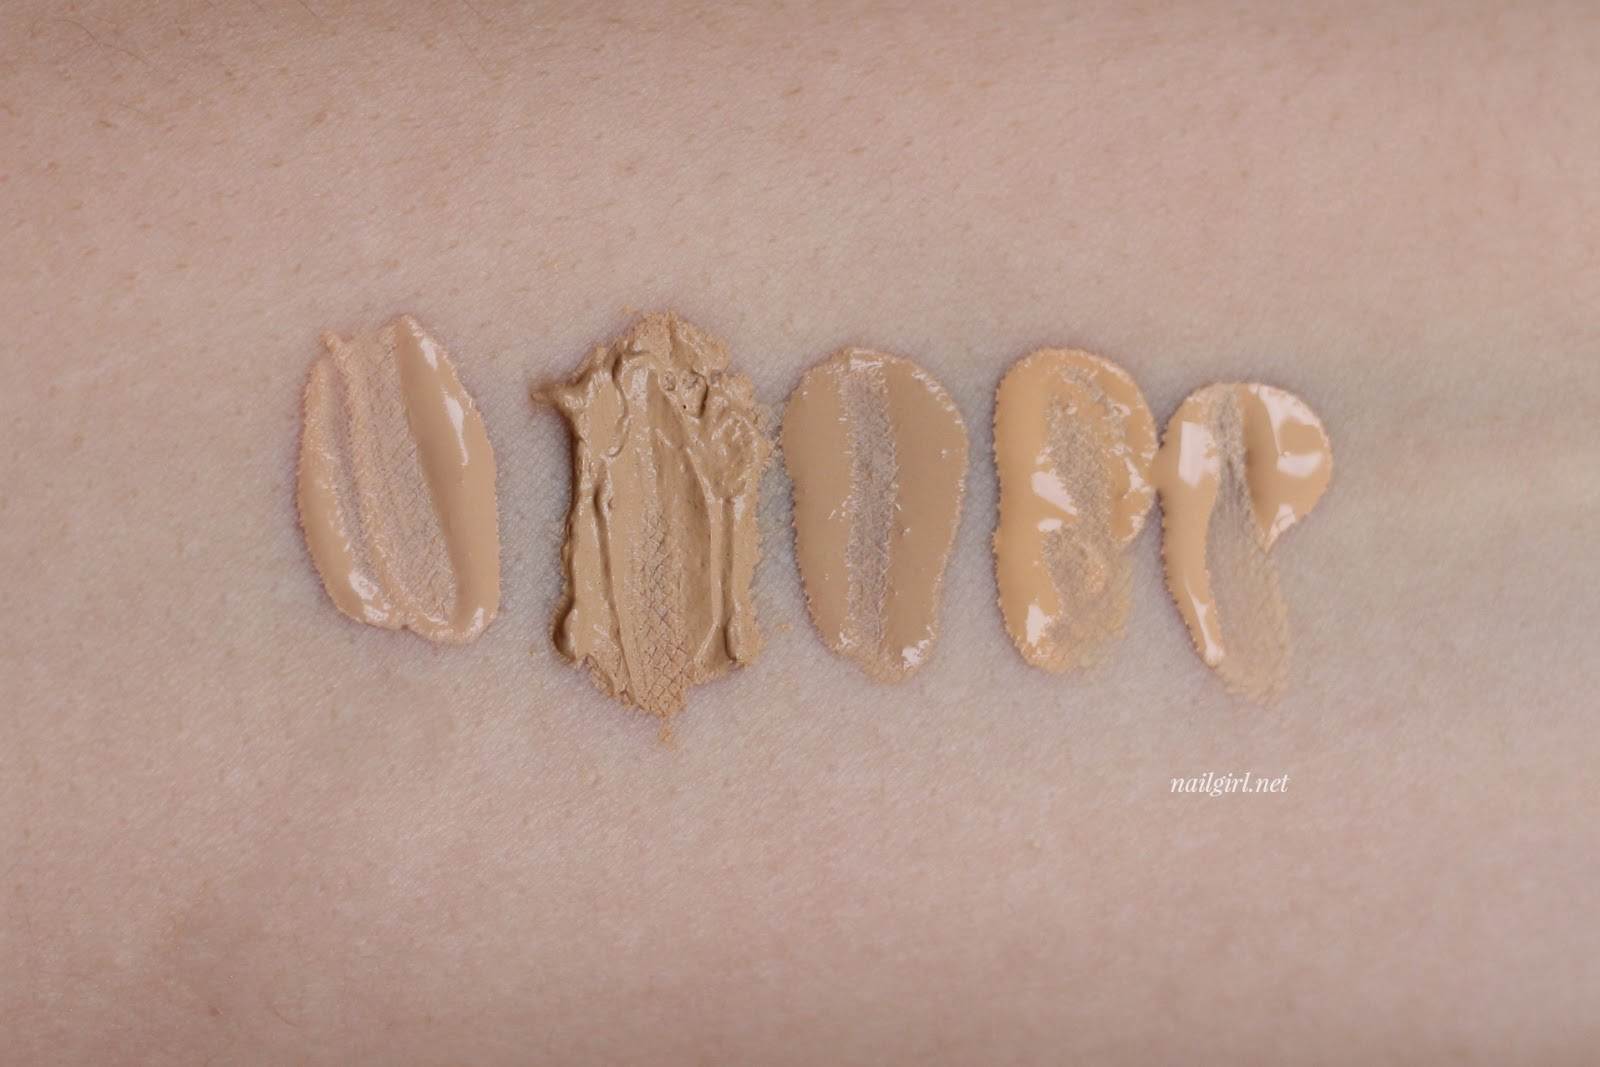 maybelline dream velvet foundation swatch nc25